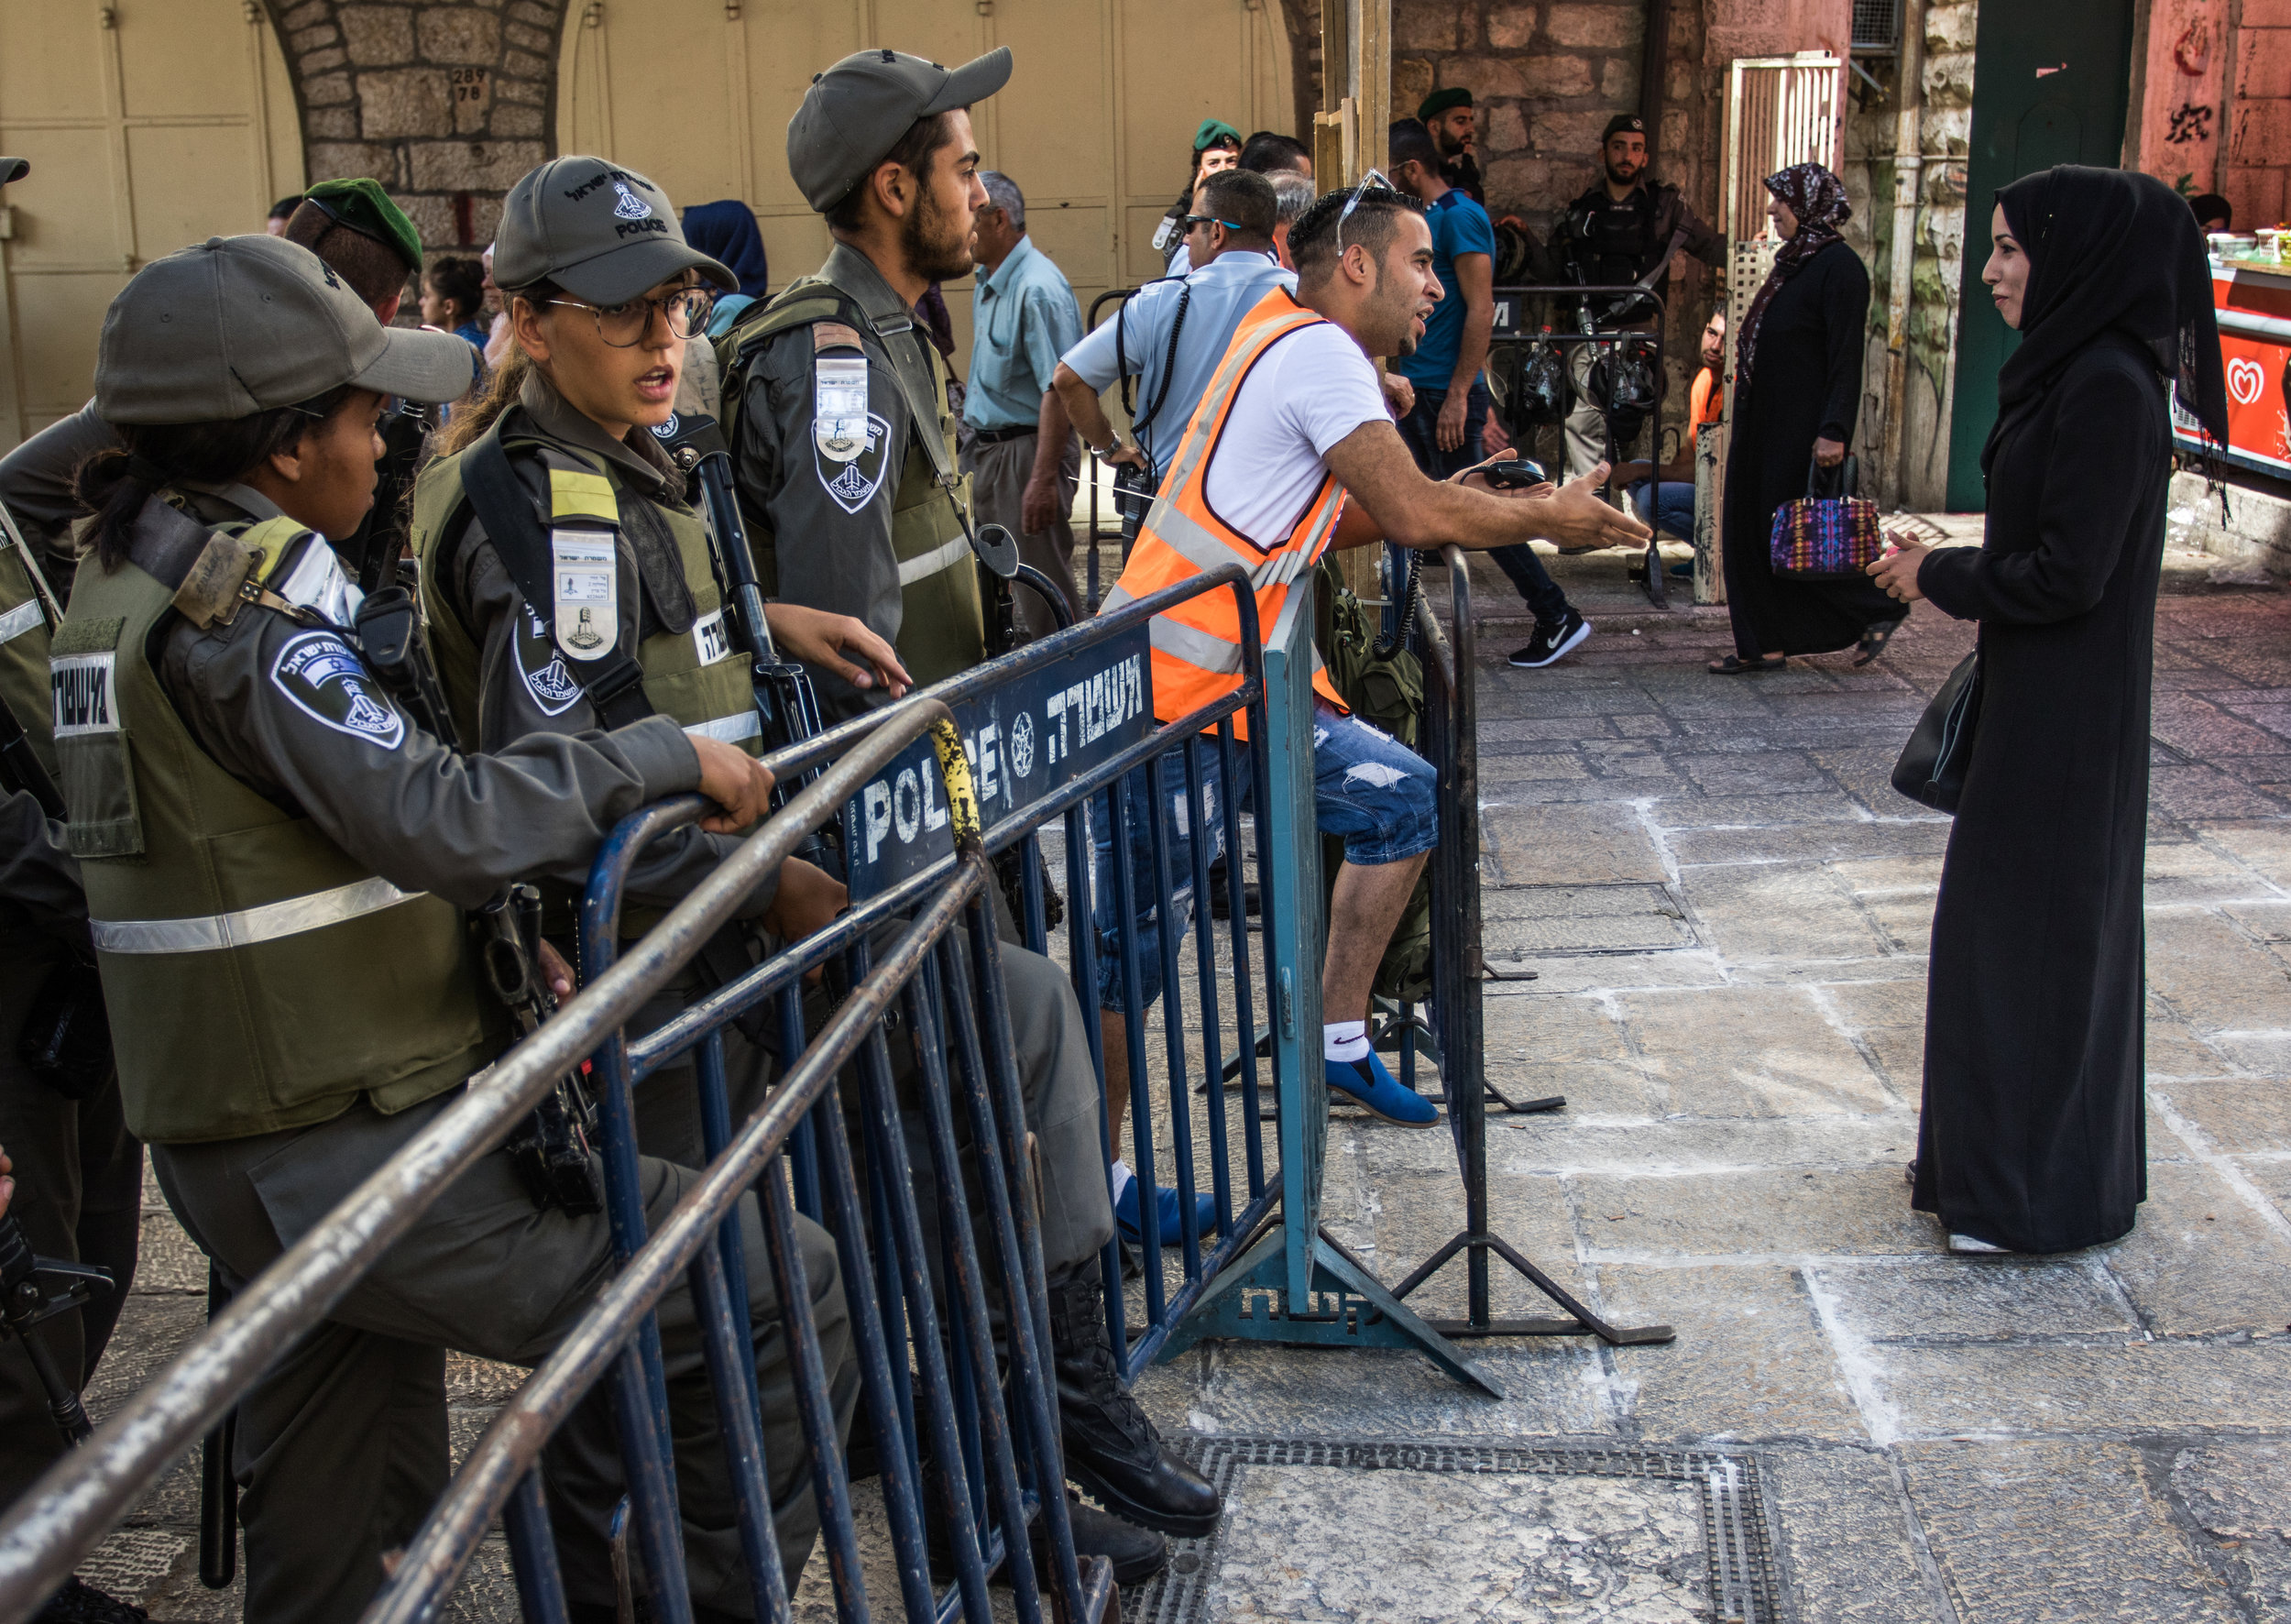 A Muslim woman stops to speak to a man directing Muslim worshippers toward the Al-Aqsa mosque for Friday Ramadan prayers in the Muslim quarter of the Old City, June 24, 2016. The security presence in the city was increased every Friday for the Muslim holy month due to the history of violent occurrences during the holiday.